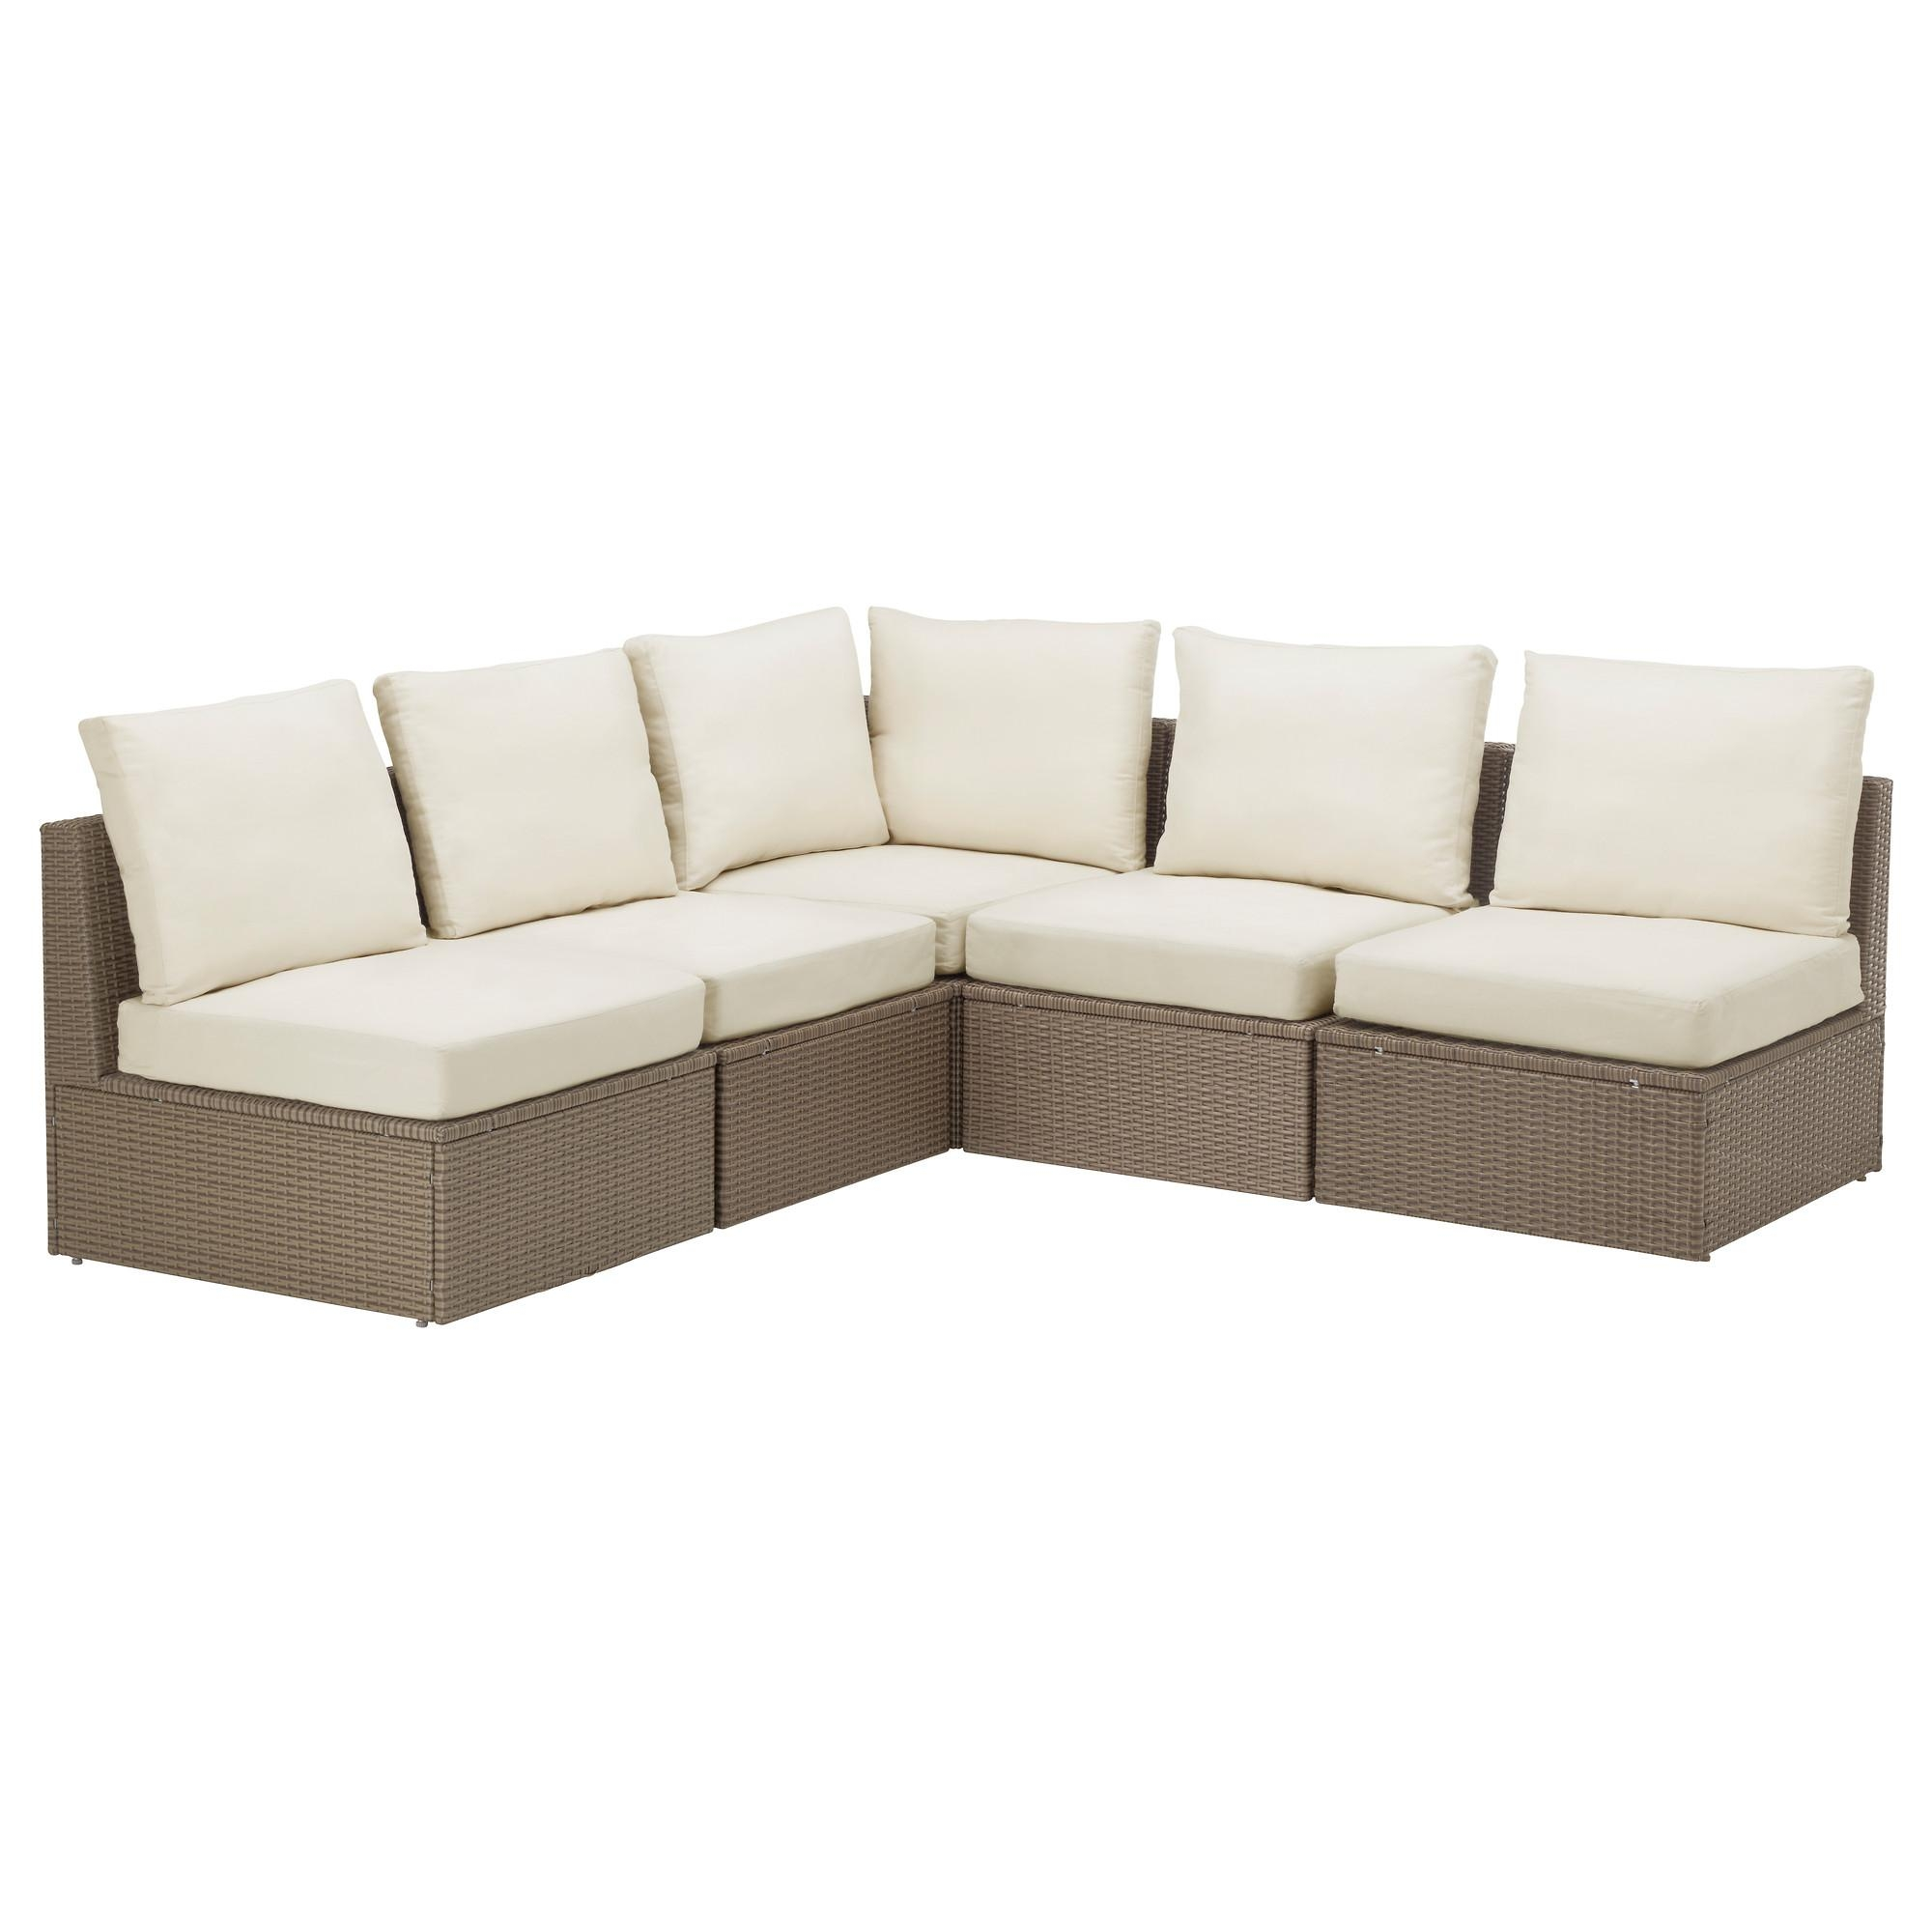 Arholma 5 Seat Sectional, Outdoor – Ikea In Furniture Sectionals Ikea (Image 1 of 15)